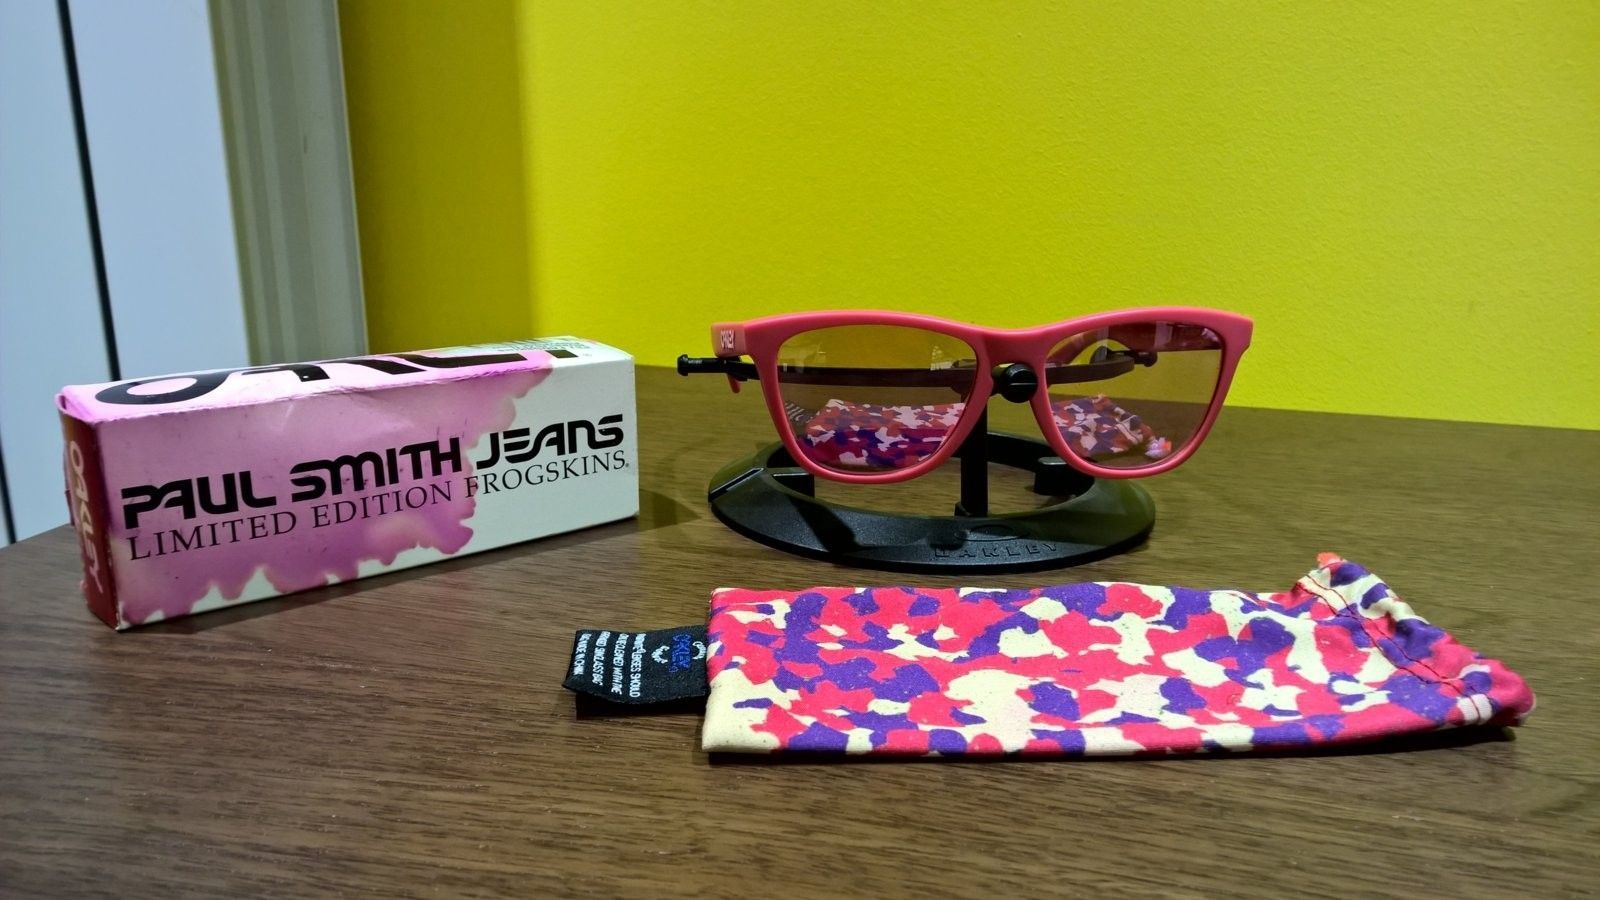 Rubberized Pink Paul Smith Frogskins Price Drop - WP_20151105_20_16_06_Pro.jpg